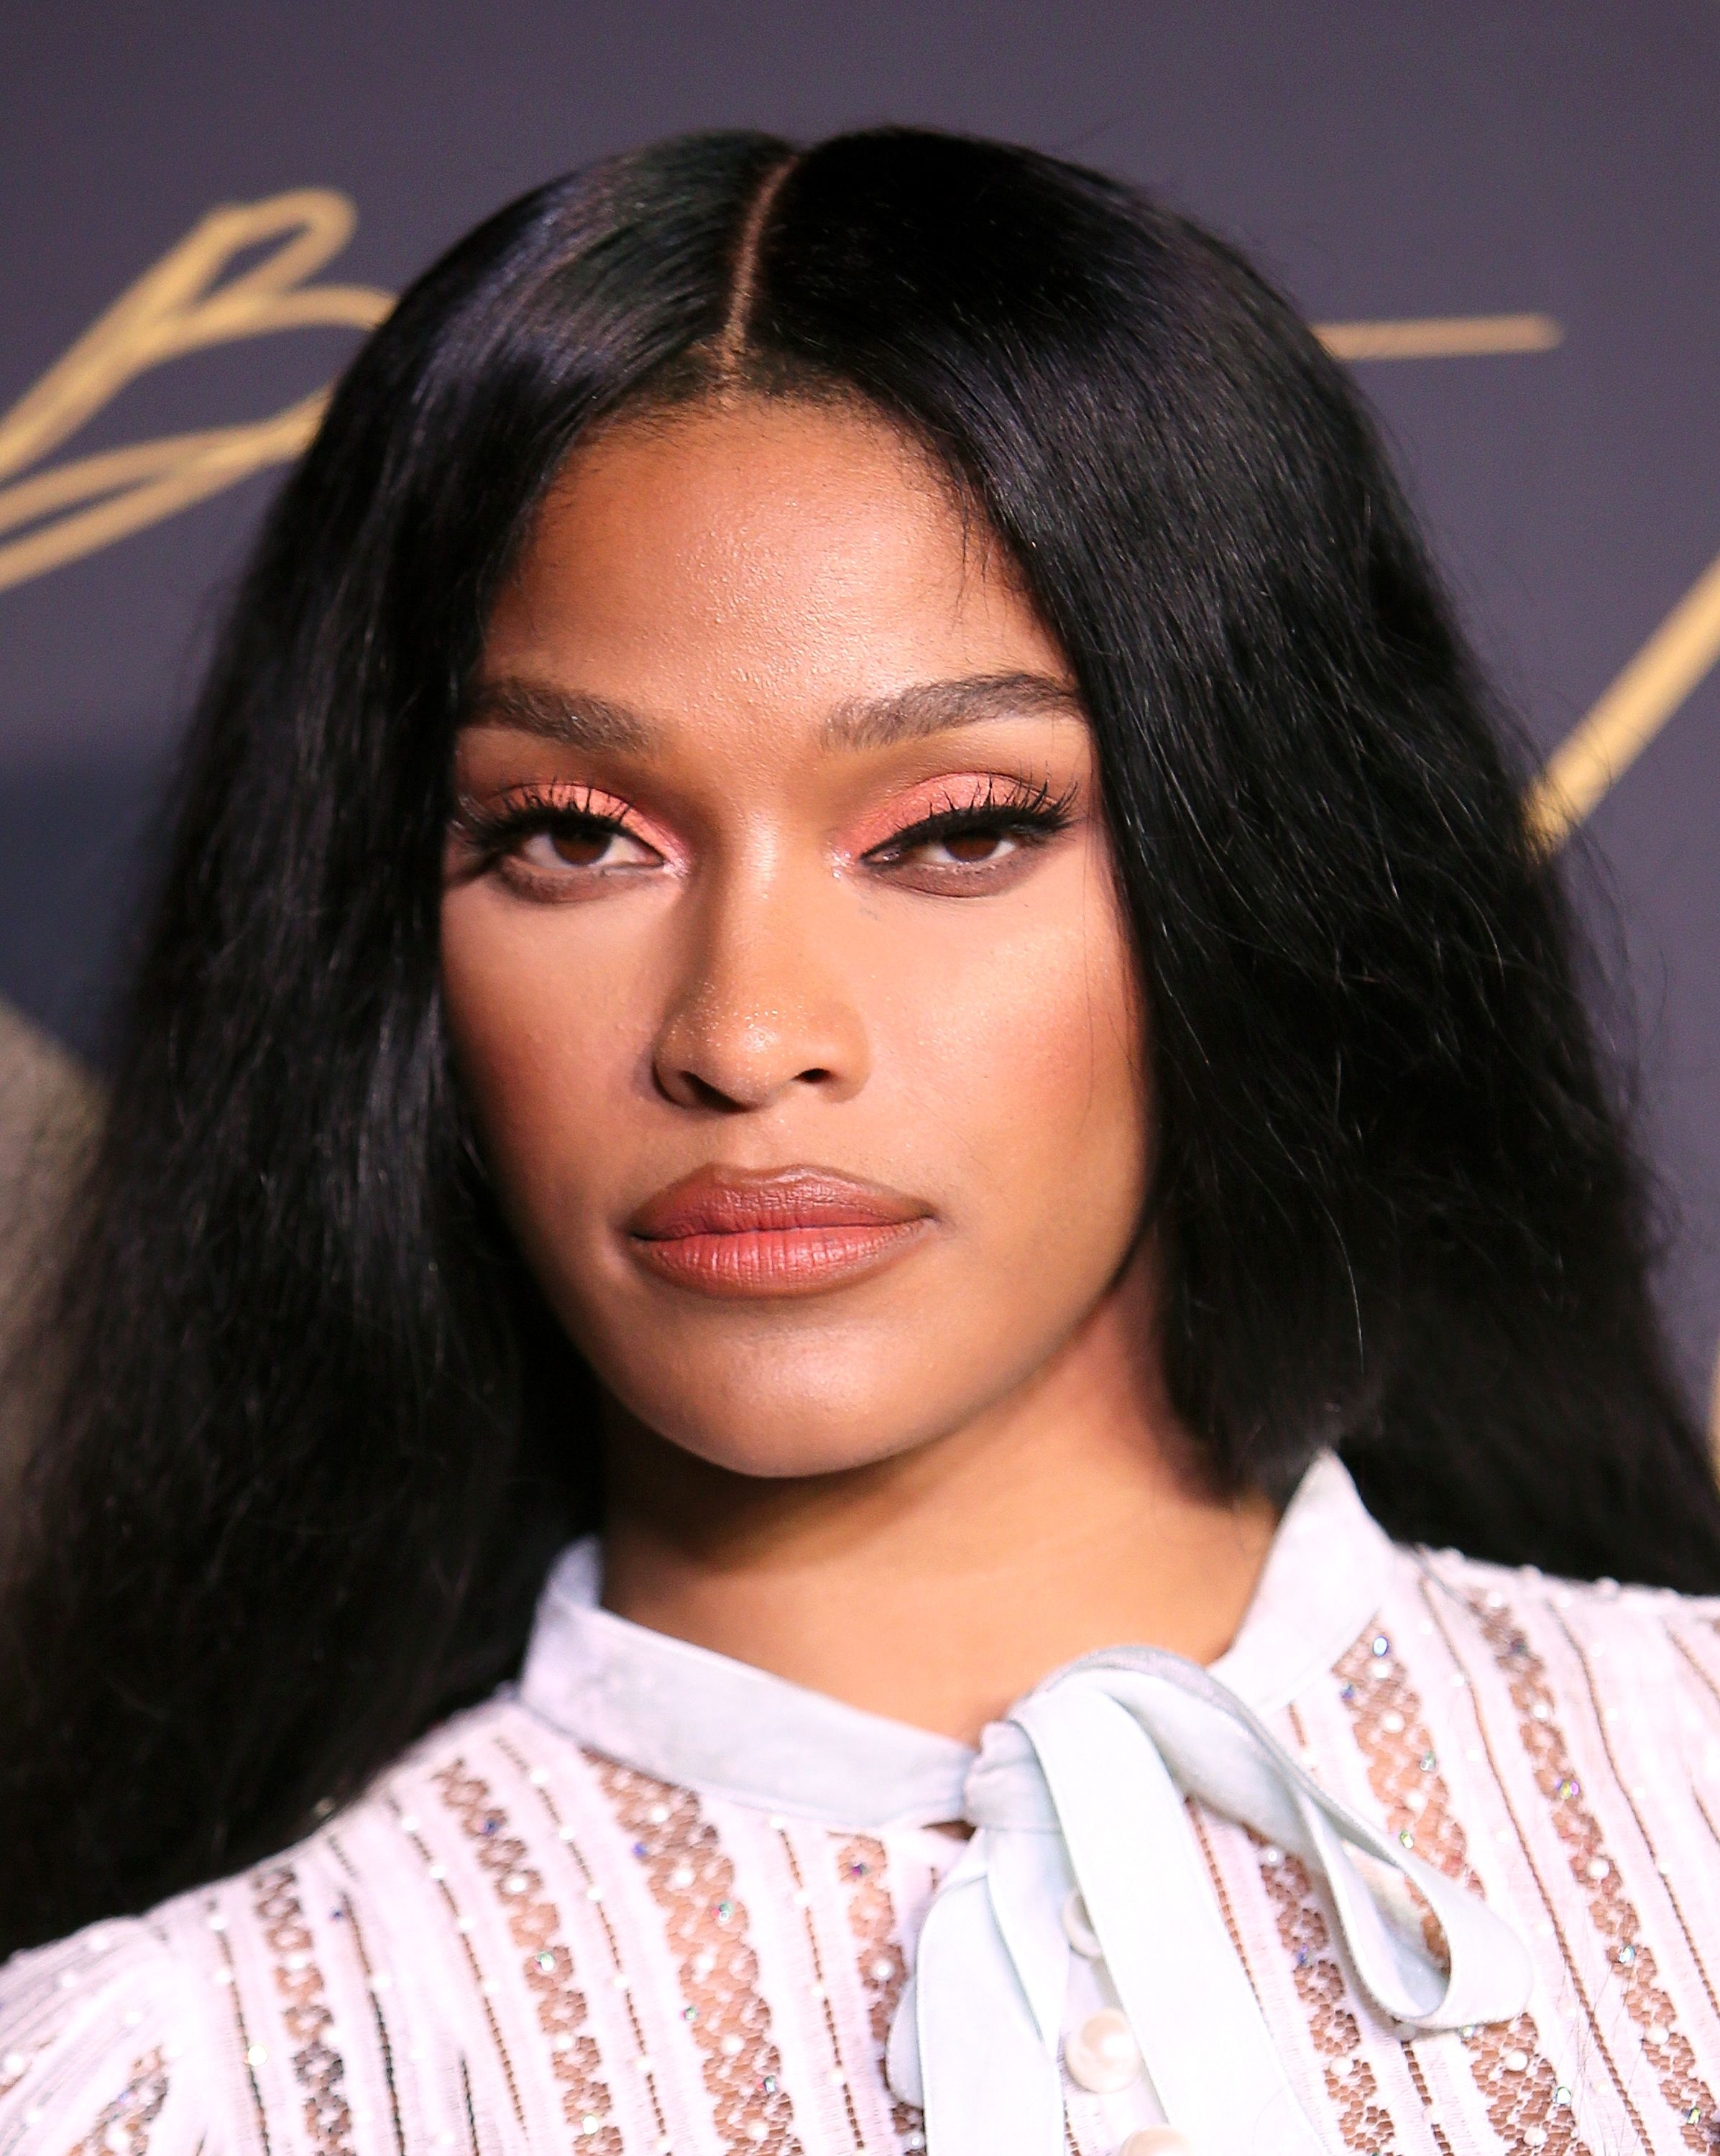 Joseline Hernandez at a party on June 24, 2017 in California. | Photo: Getty Images